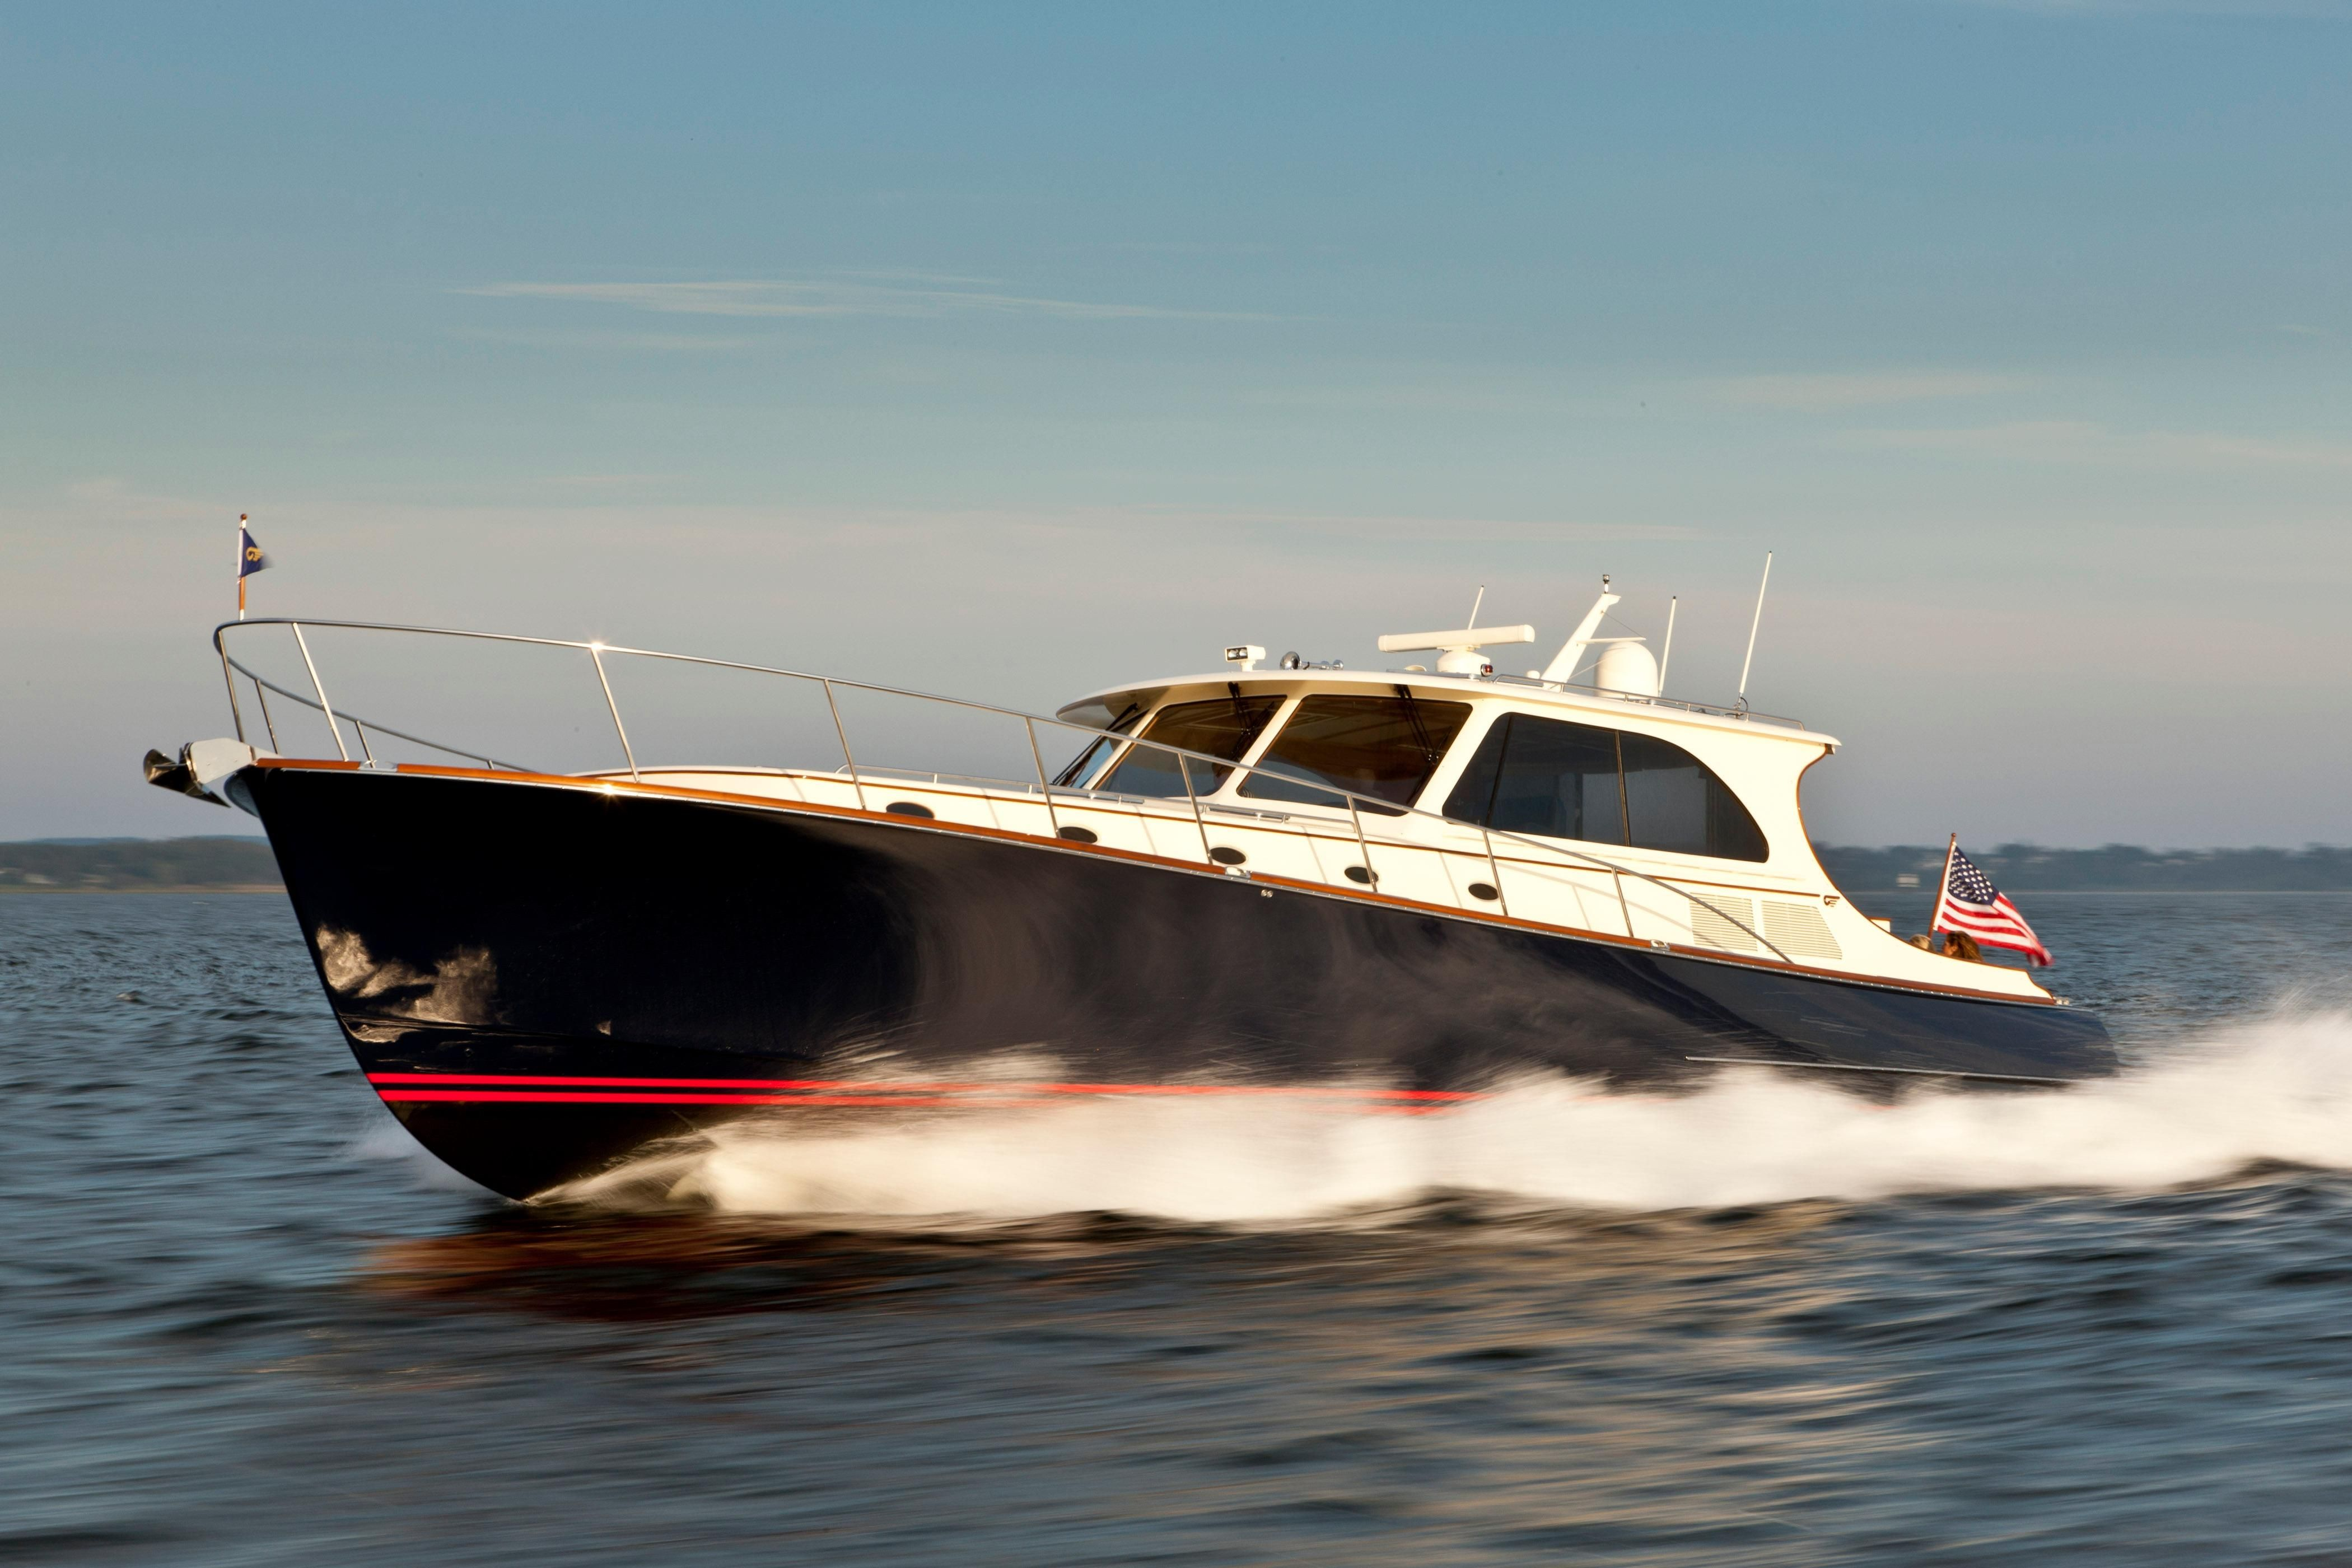 2011 hinckley talaria 55 mkii my power boat for sale www Best motor boats